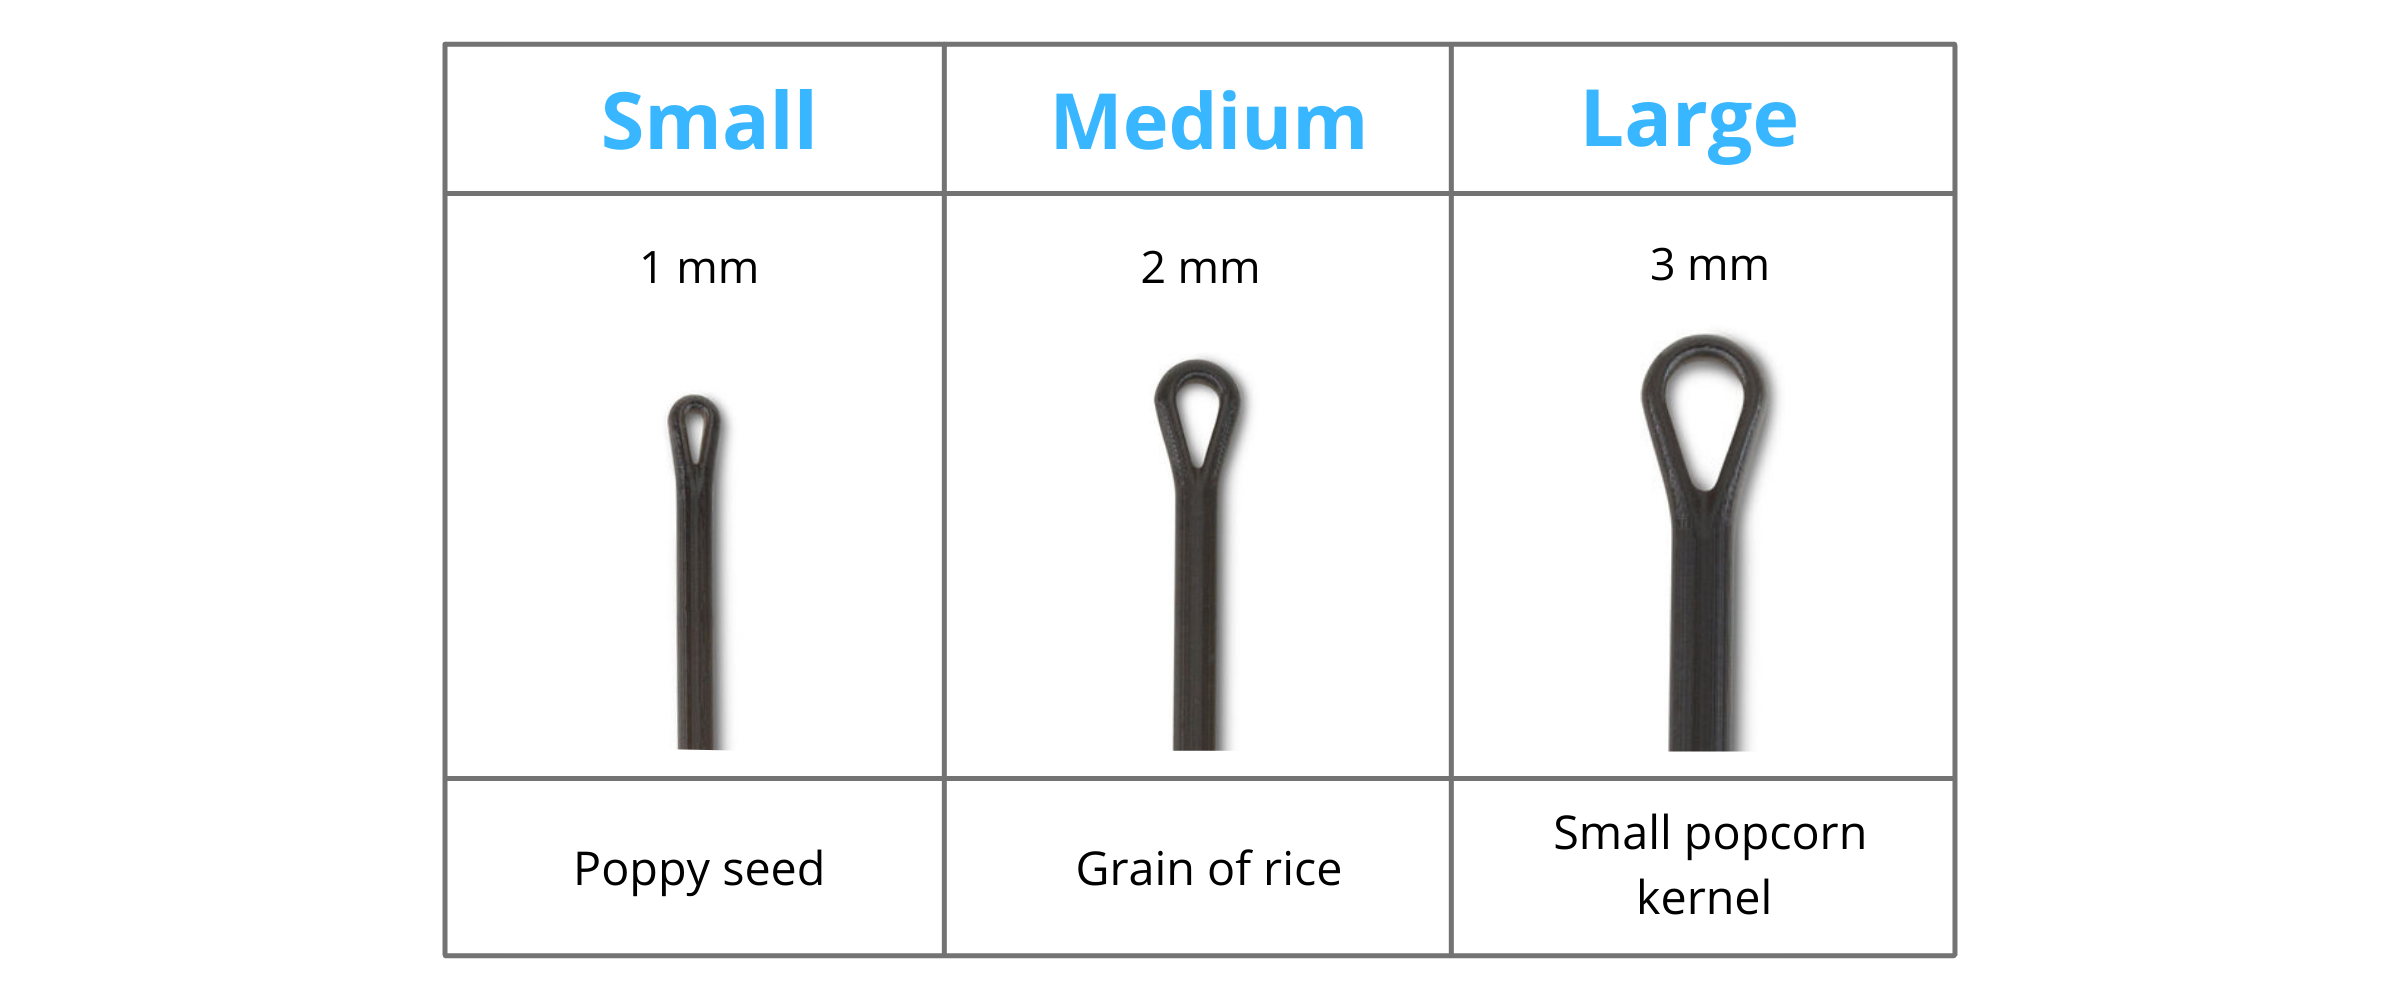 TonsiFIX Tonsil Stone Tool Singles by Tonsil Tech Size Guide